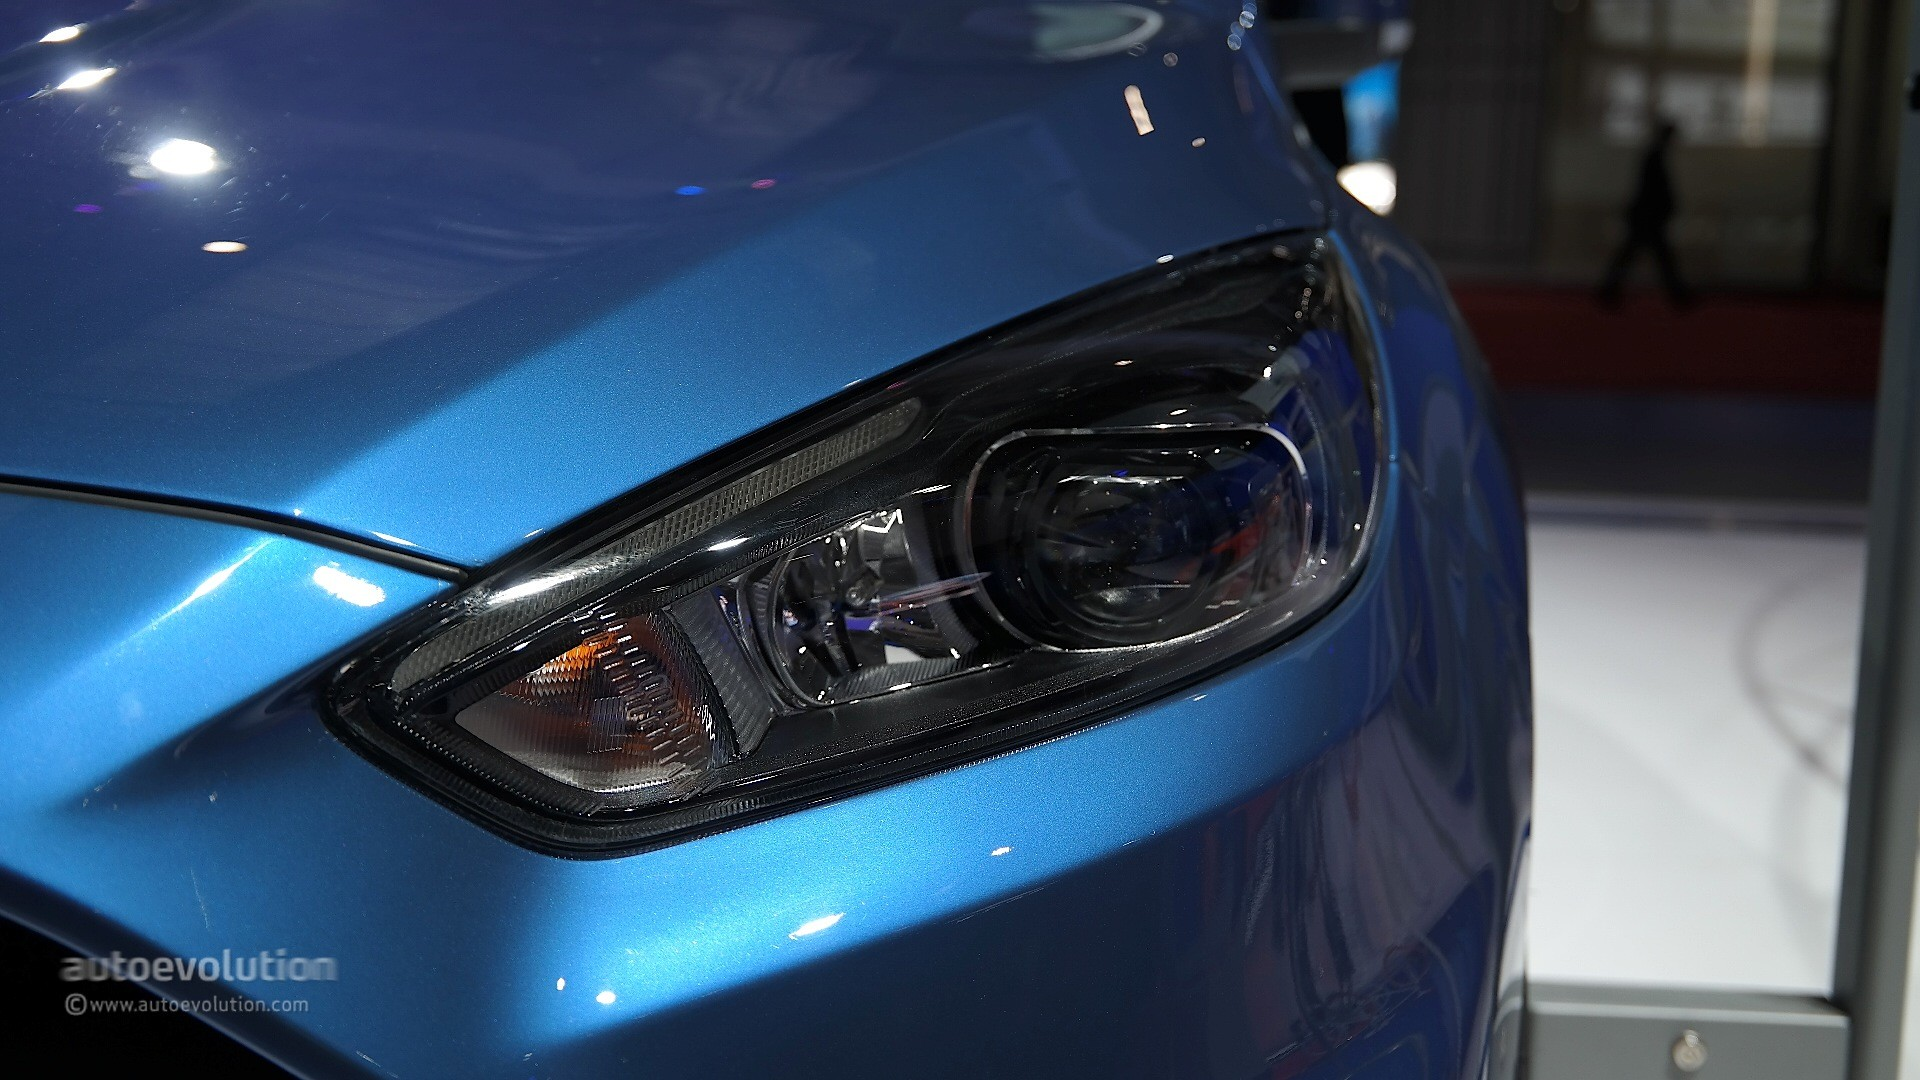 2016 Ford Focus RS Arriving in China via the Shanghai Auto Show - autoevolution